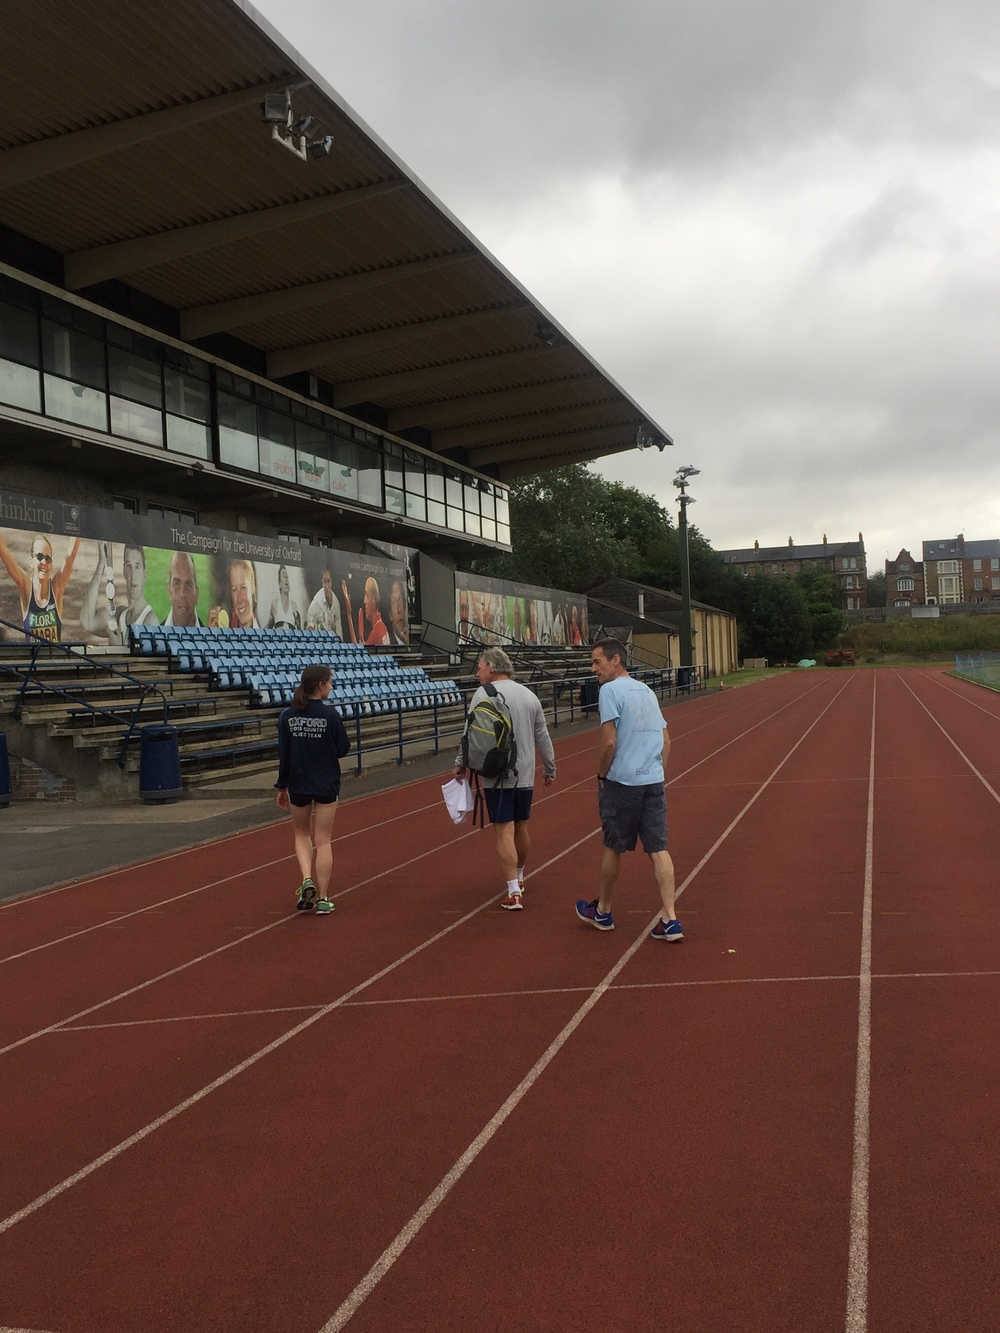 Arriving on the grounds of the iconic Roger Bannister Stadium.